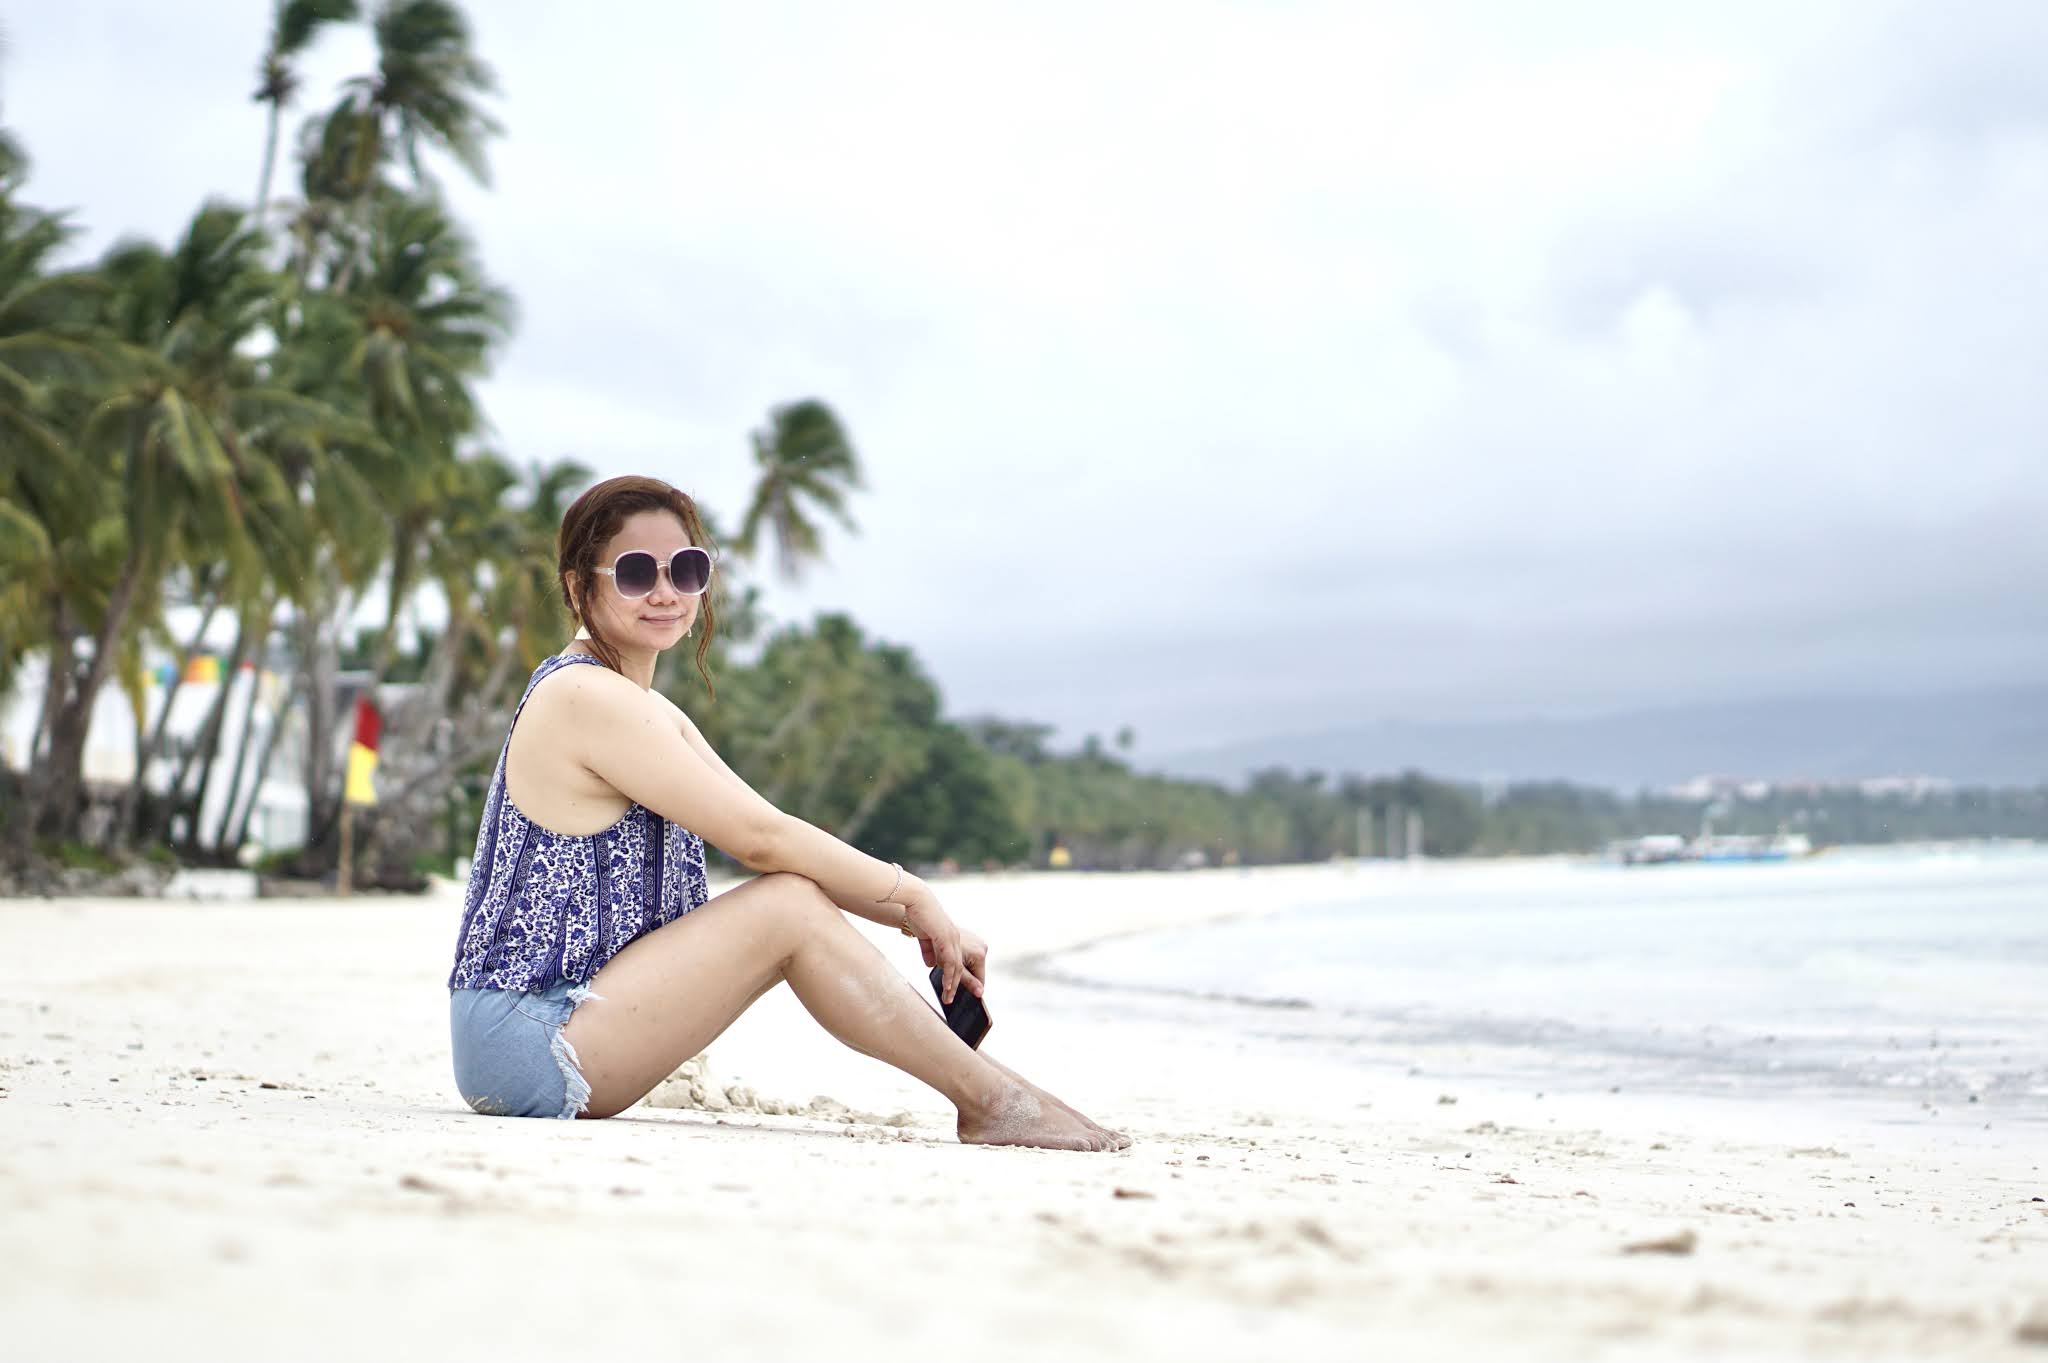 Travel in the New Normal: Bound for Boracay Island Requirements